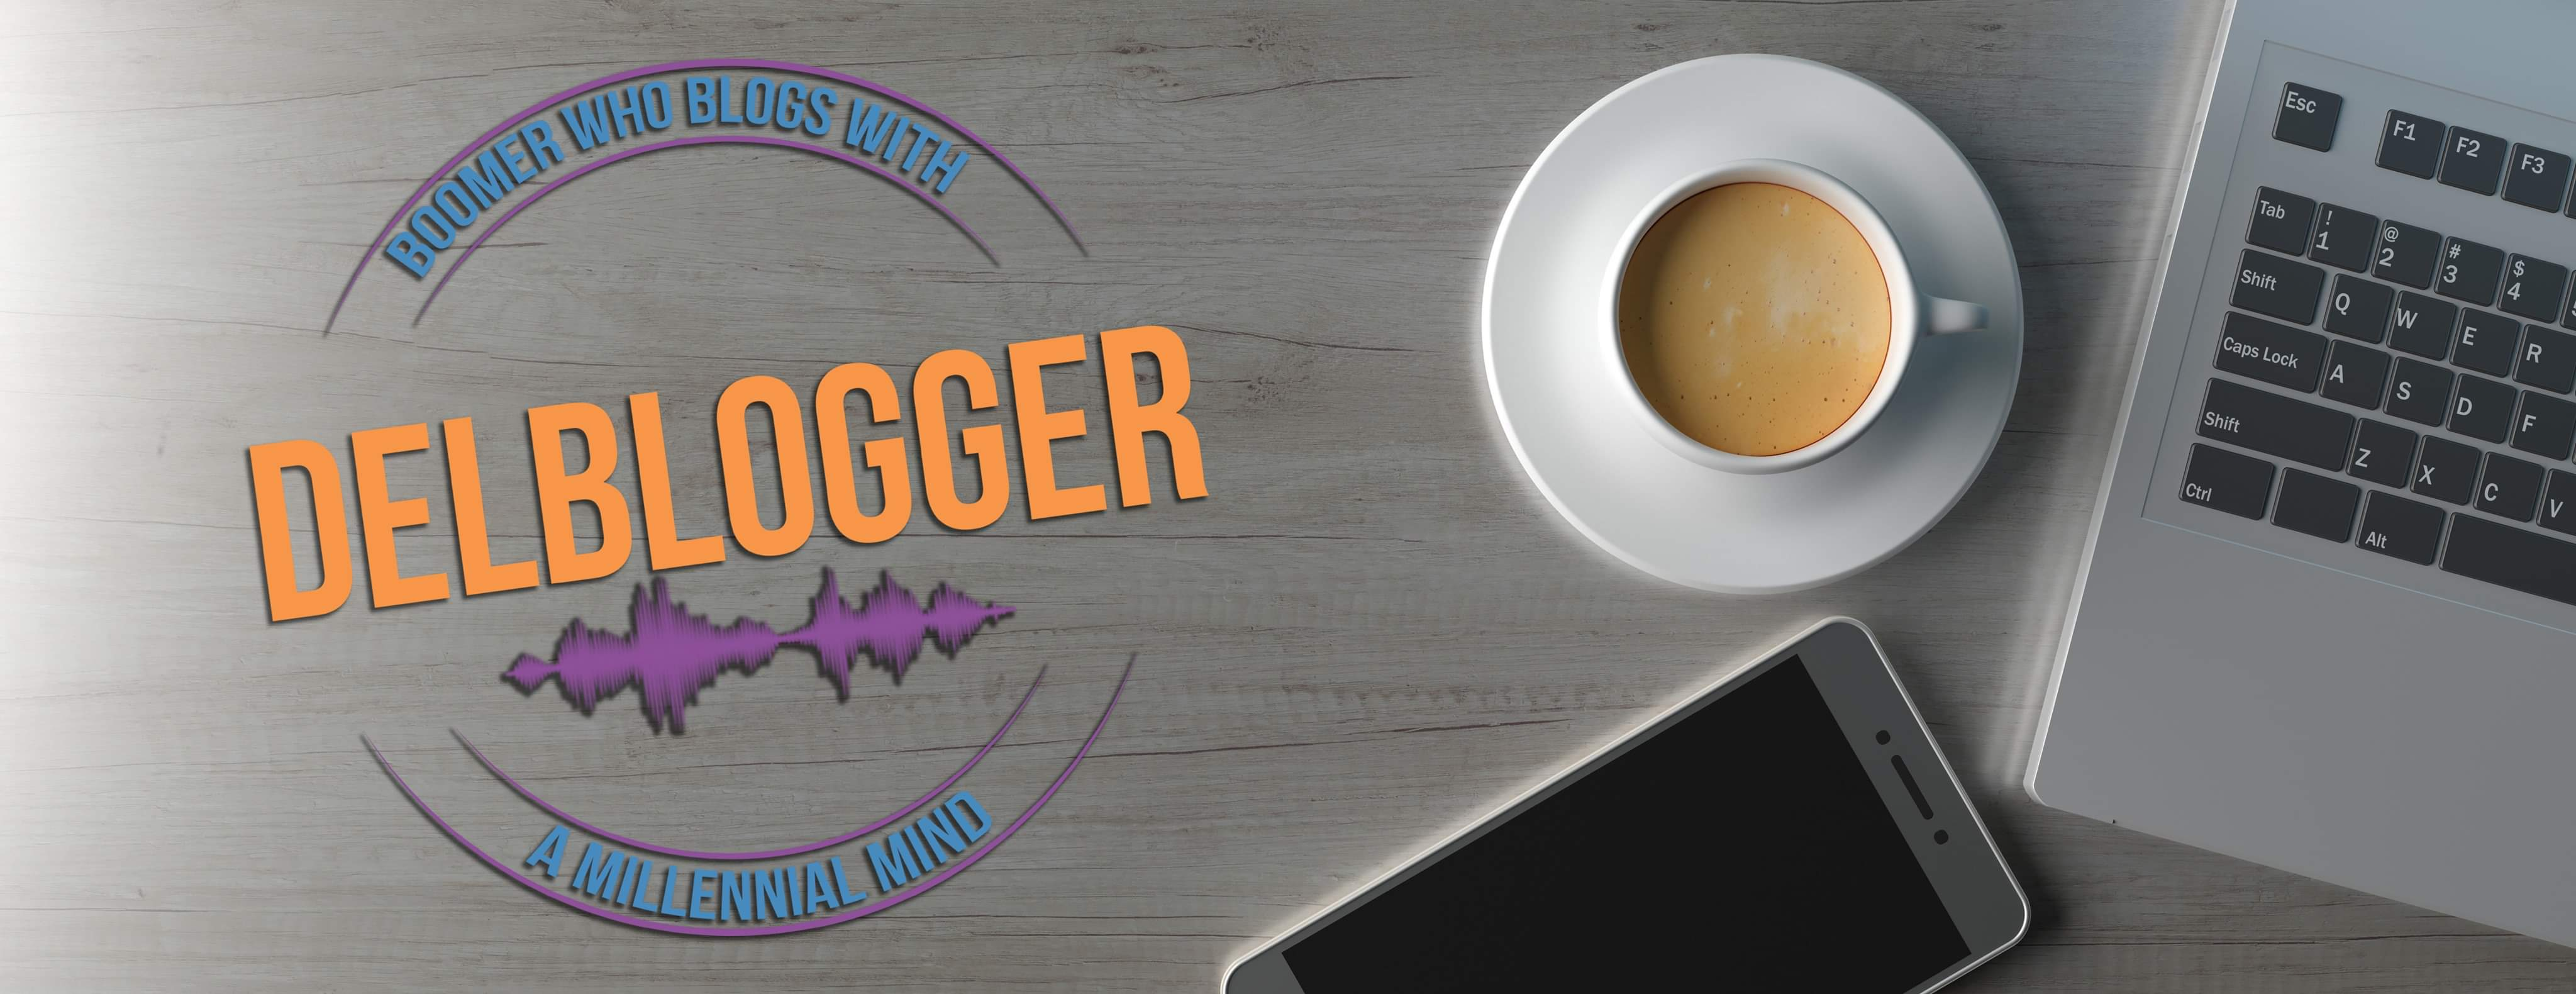 DelBlogger Banner